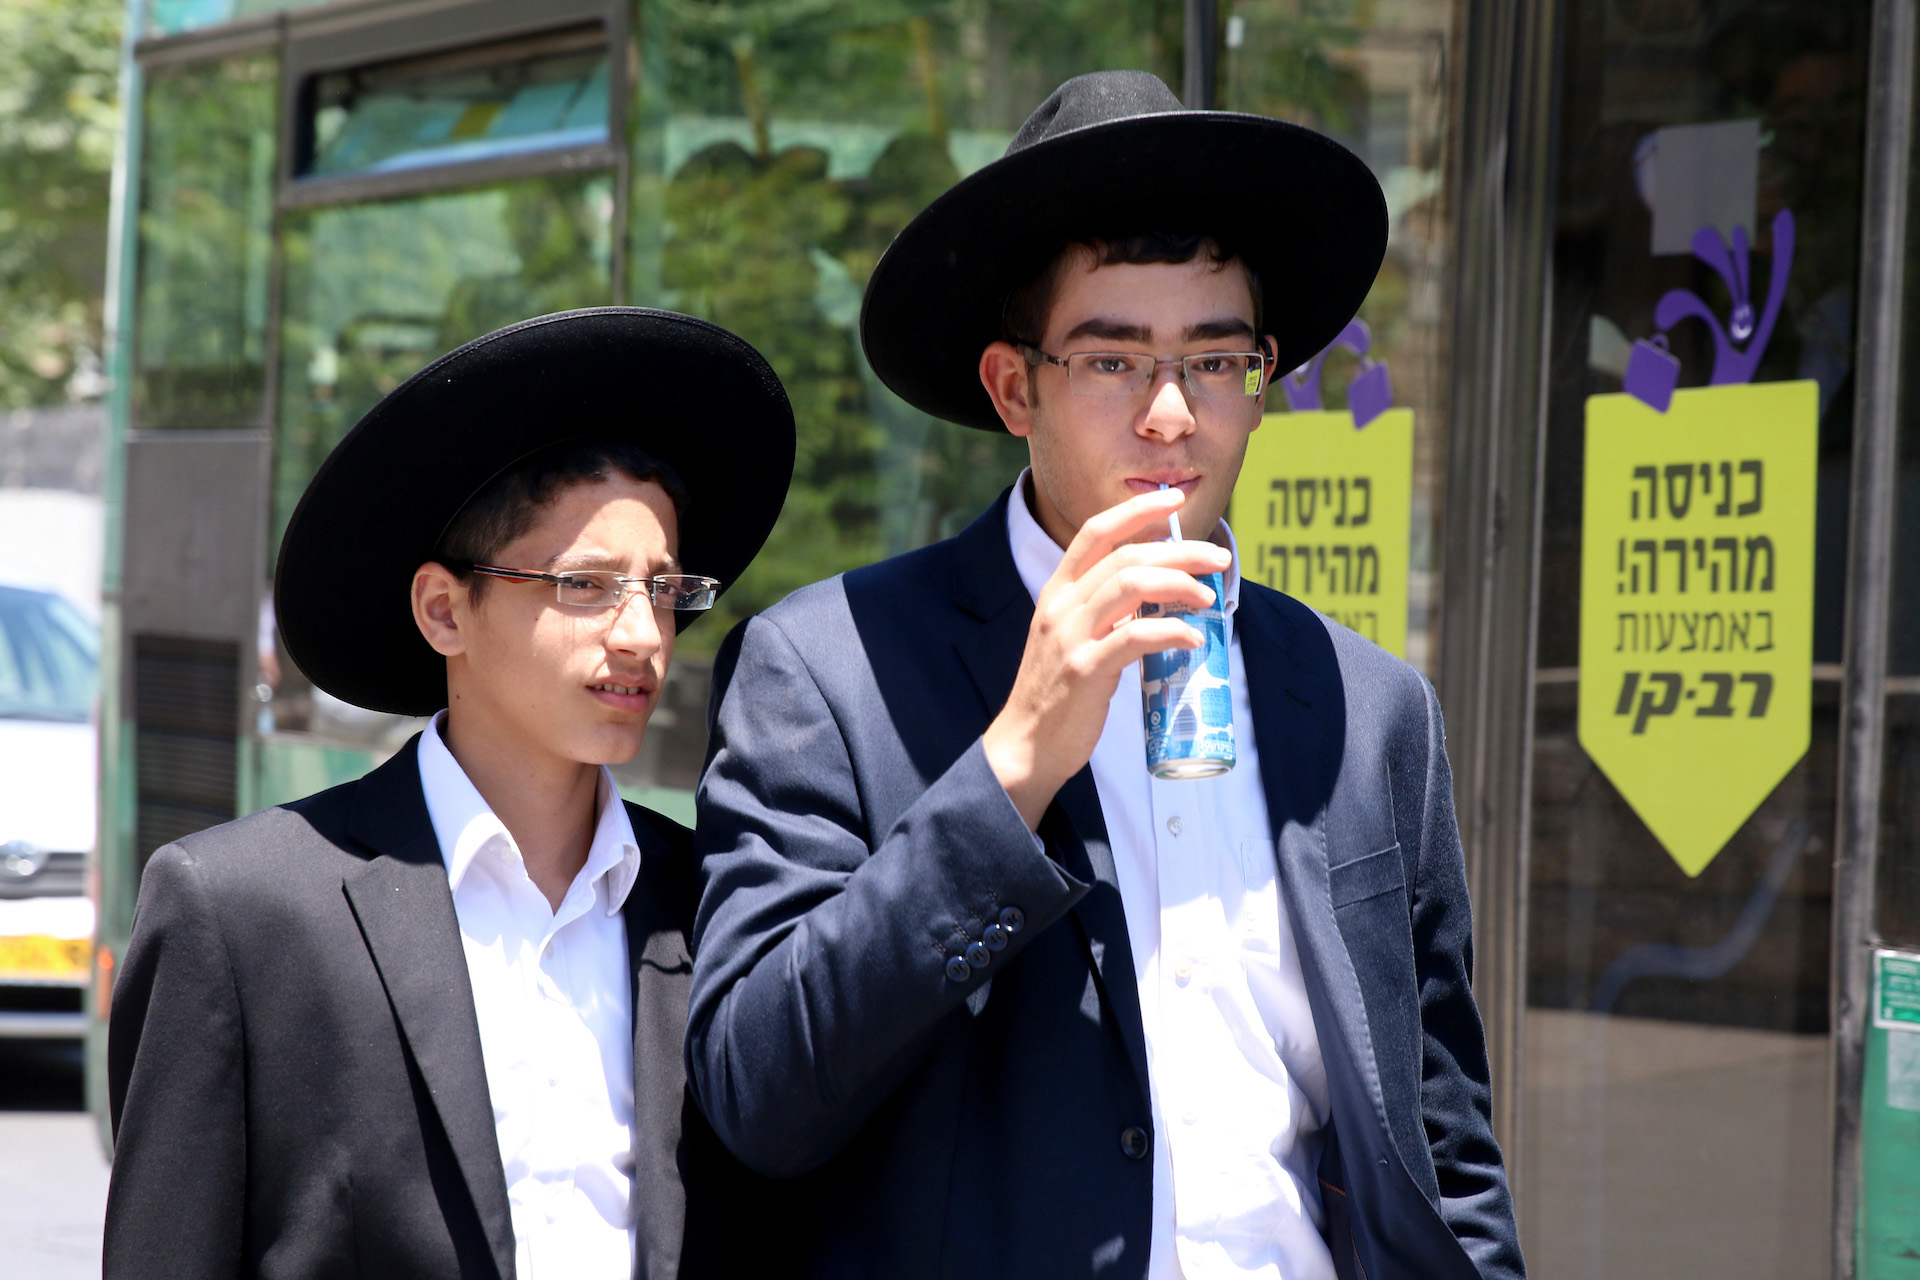 05/30/2016 Jerusalem, Israel Two young Haredi boys walk around the Mea Sharim neighborhood in Jerusalem. Mea Sharim is populated mostly by Haredi Jews, a strictly orthodox group inclined to reject modern secular strains of juadaism in favor of traditional practices.